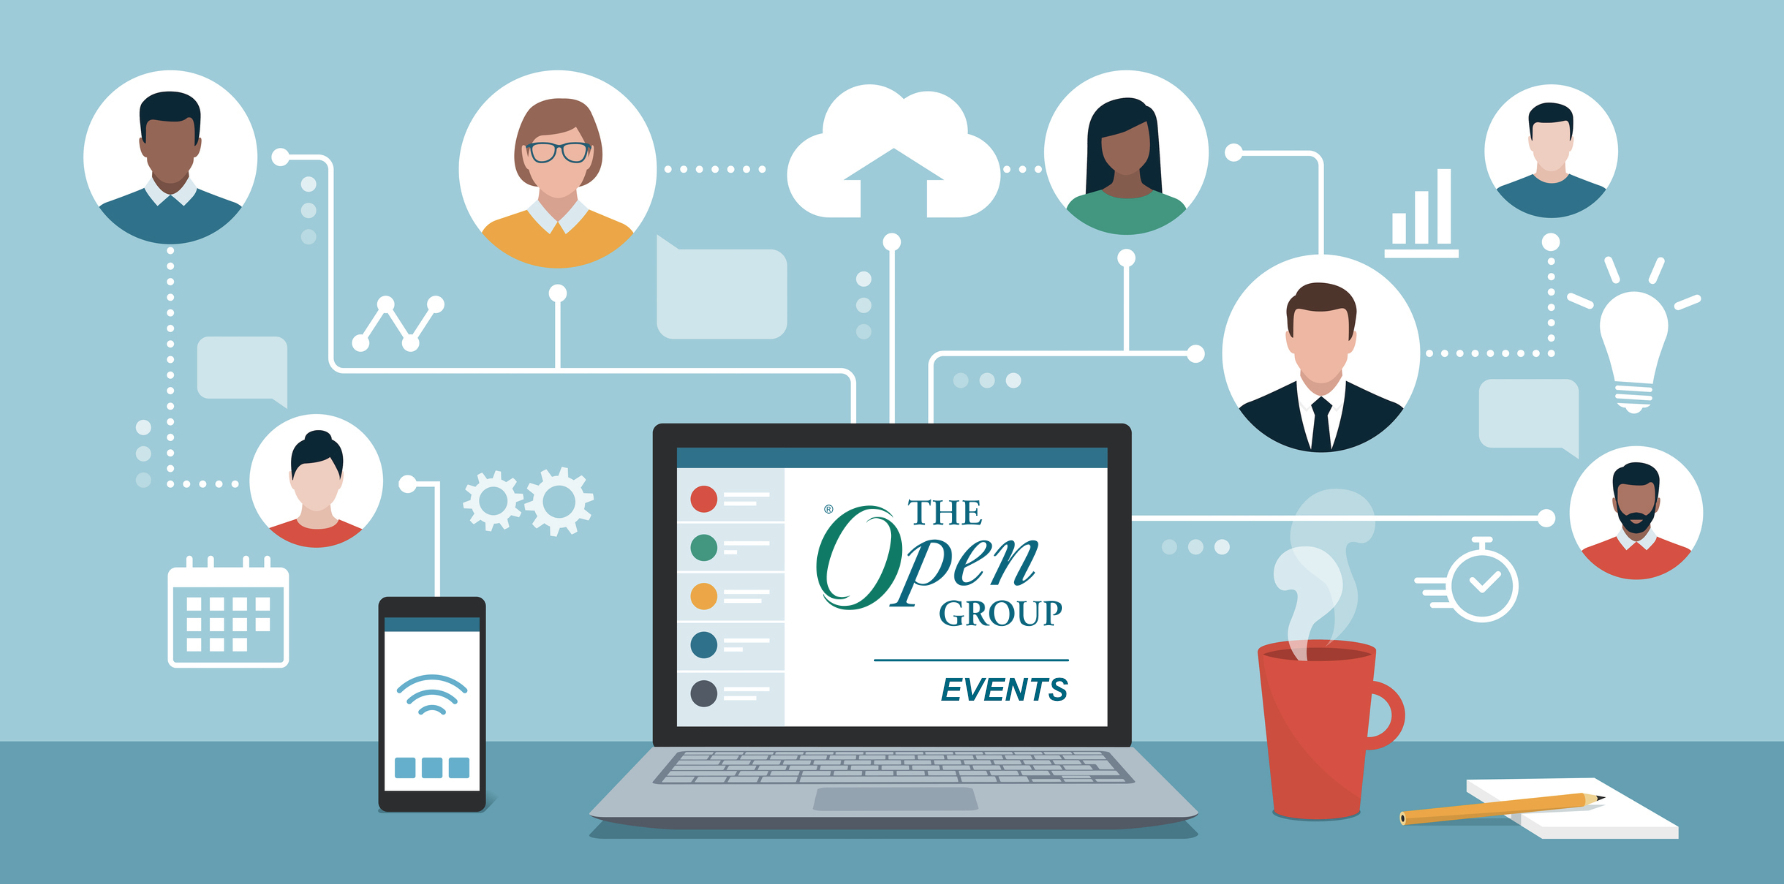 The Open Group 'Open Digital Standards' Virtual Event January 25-27, 2021 – Highlights